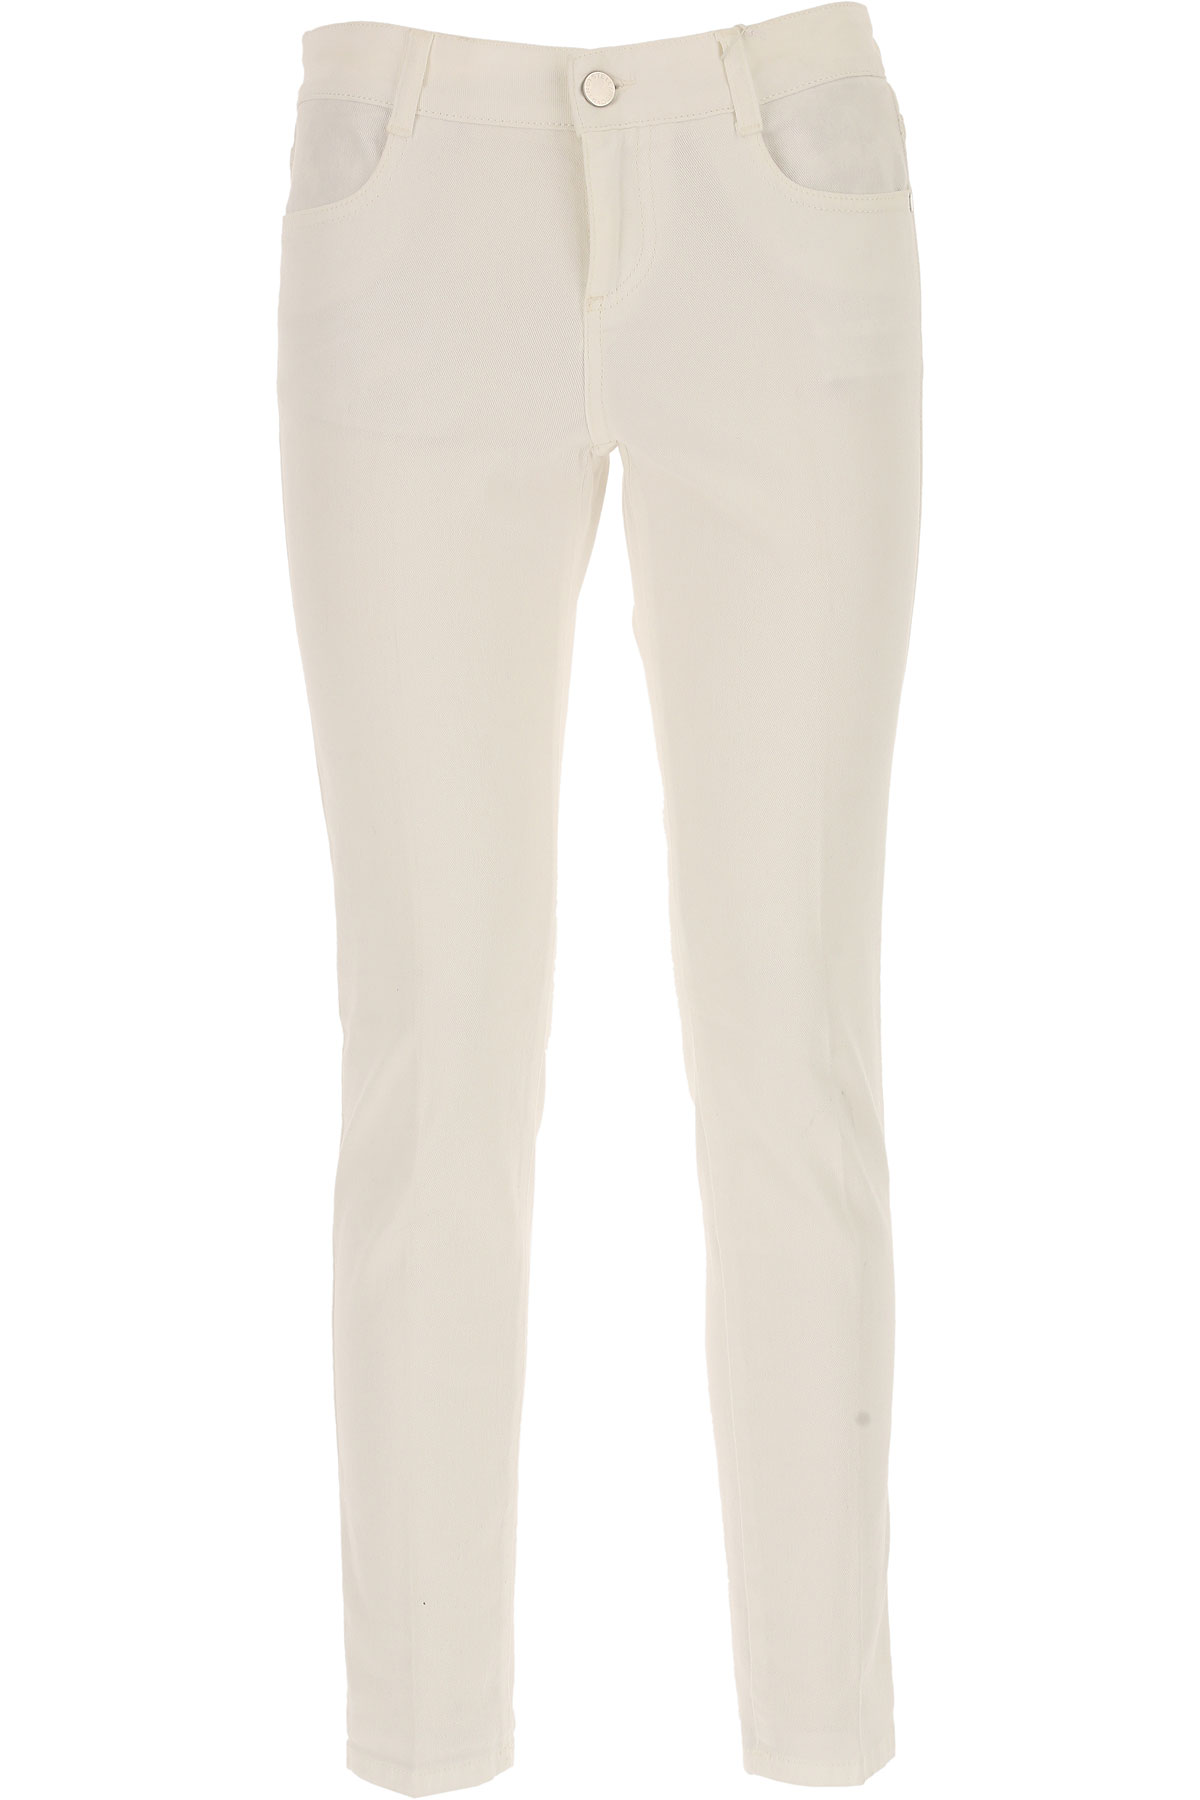 Stella McCartney Jeans On Sale in Outlet, White, Cotton, 2017, 26 28 USA-434737